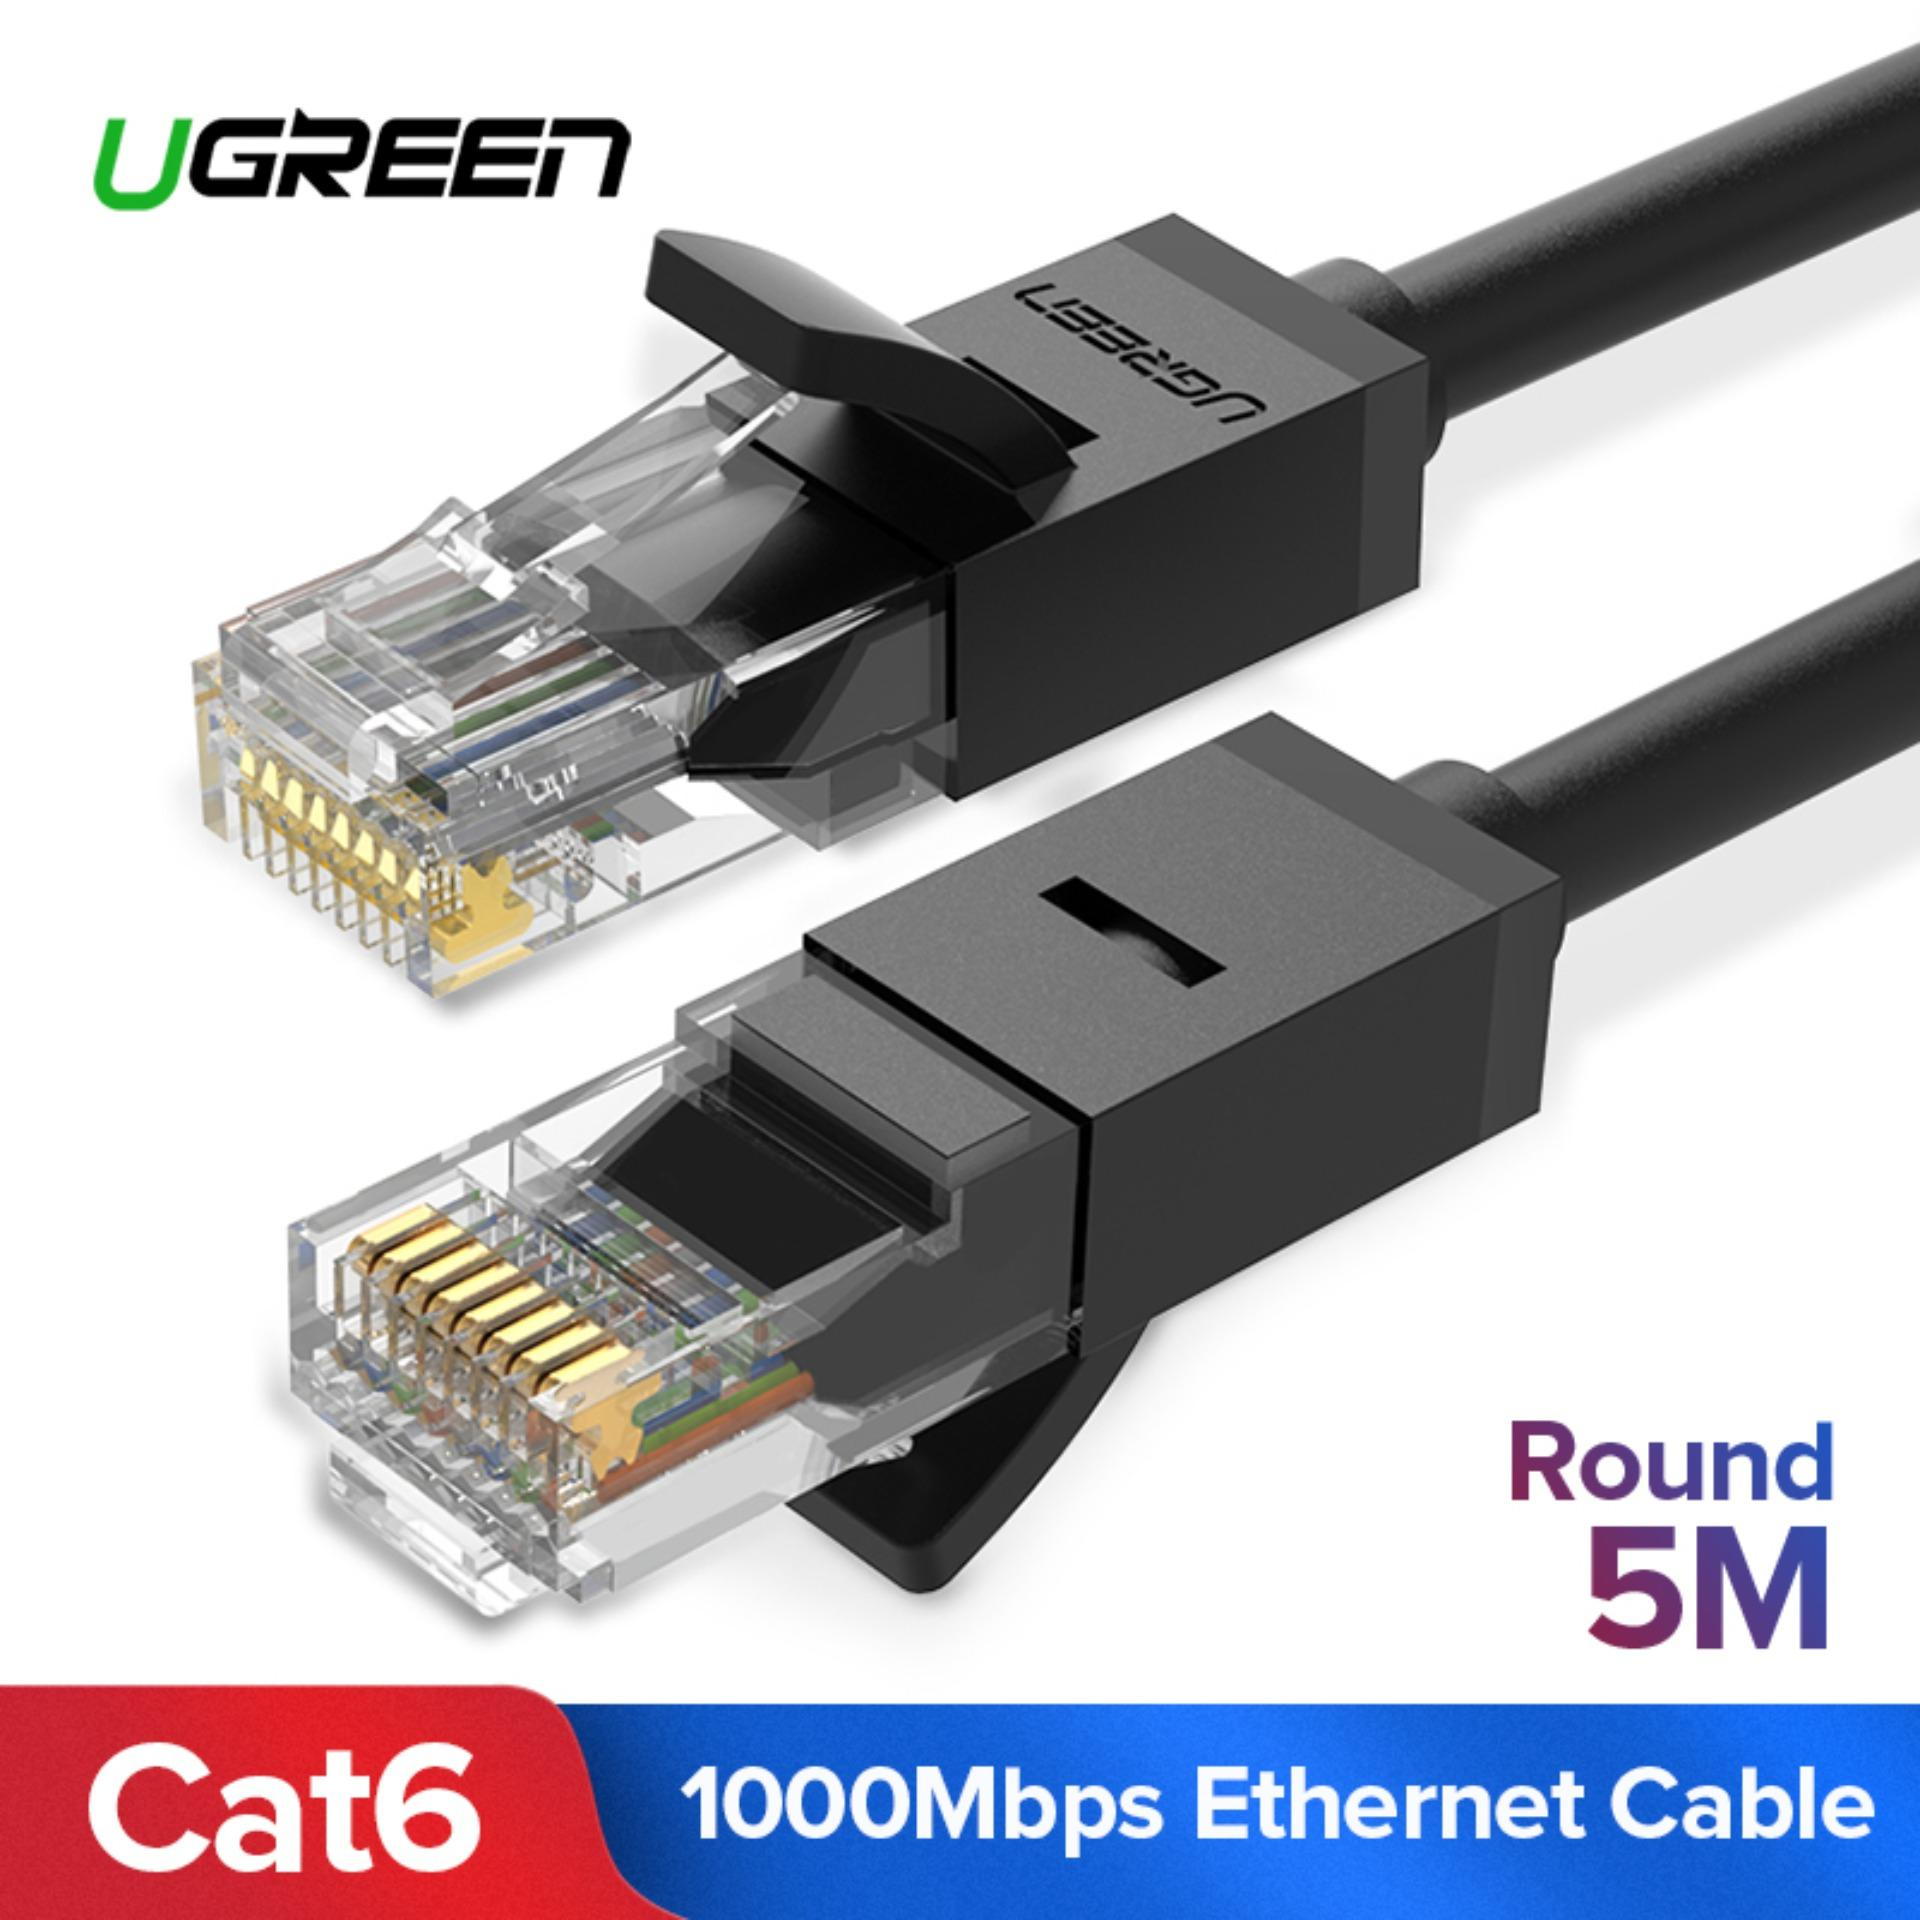 UGREEN 5Meter Cat6 Ethernet Patch Round Cable Gigabit RJ45 Network Wire Lan Cable Plug Connector for